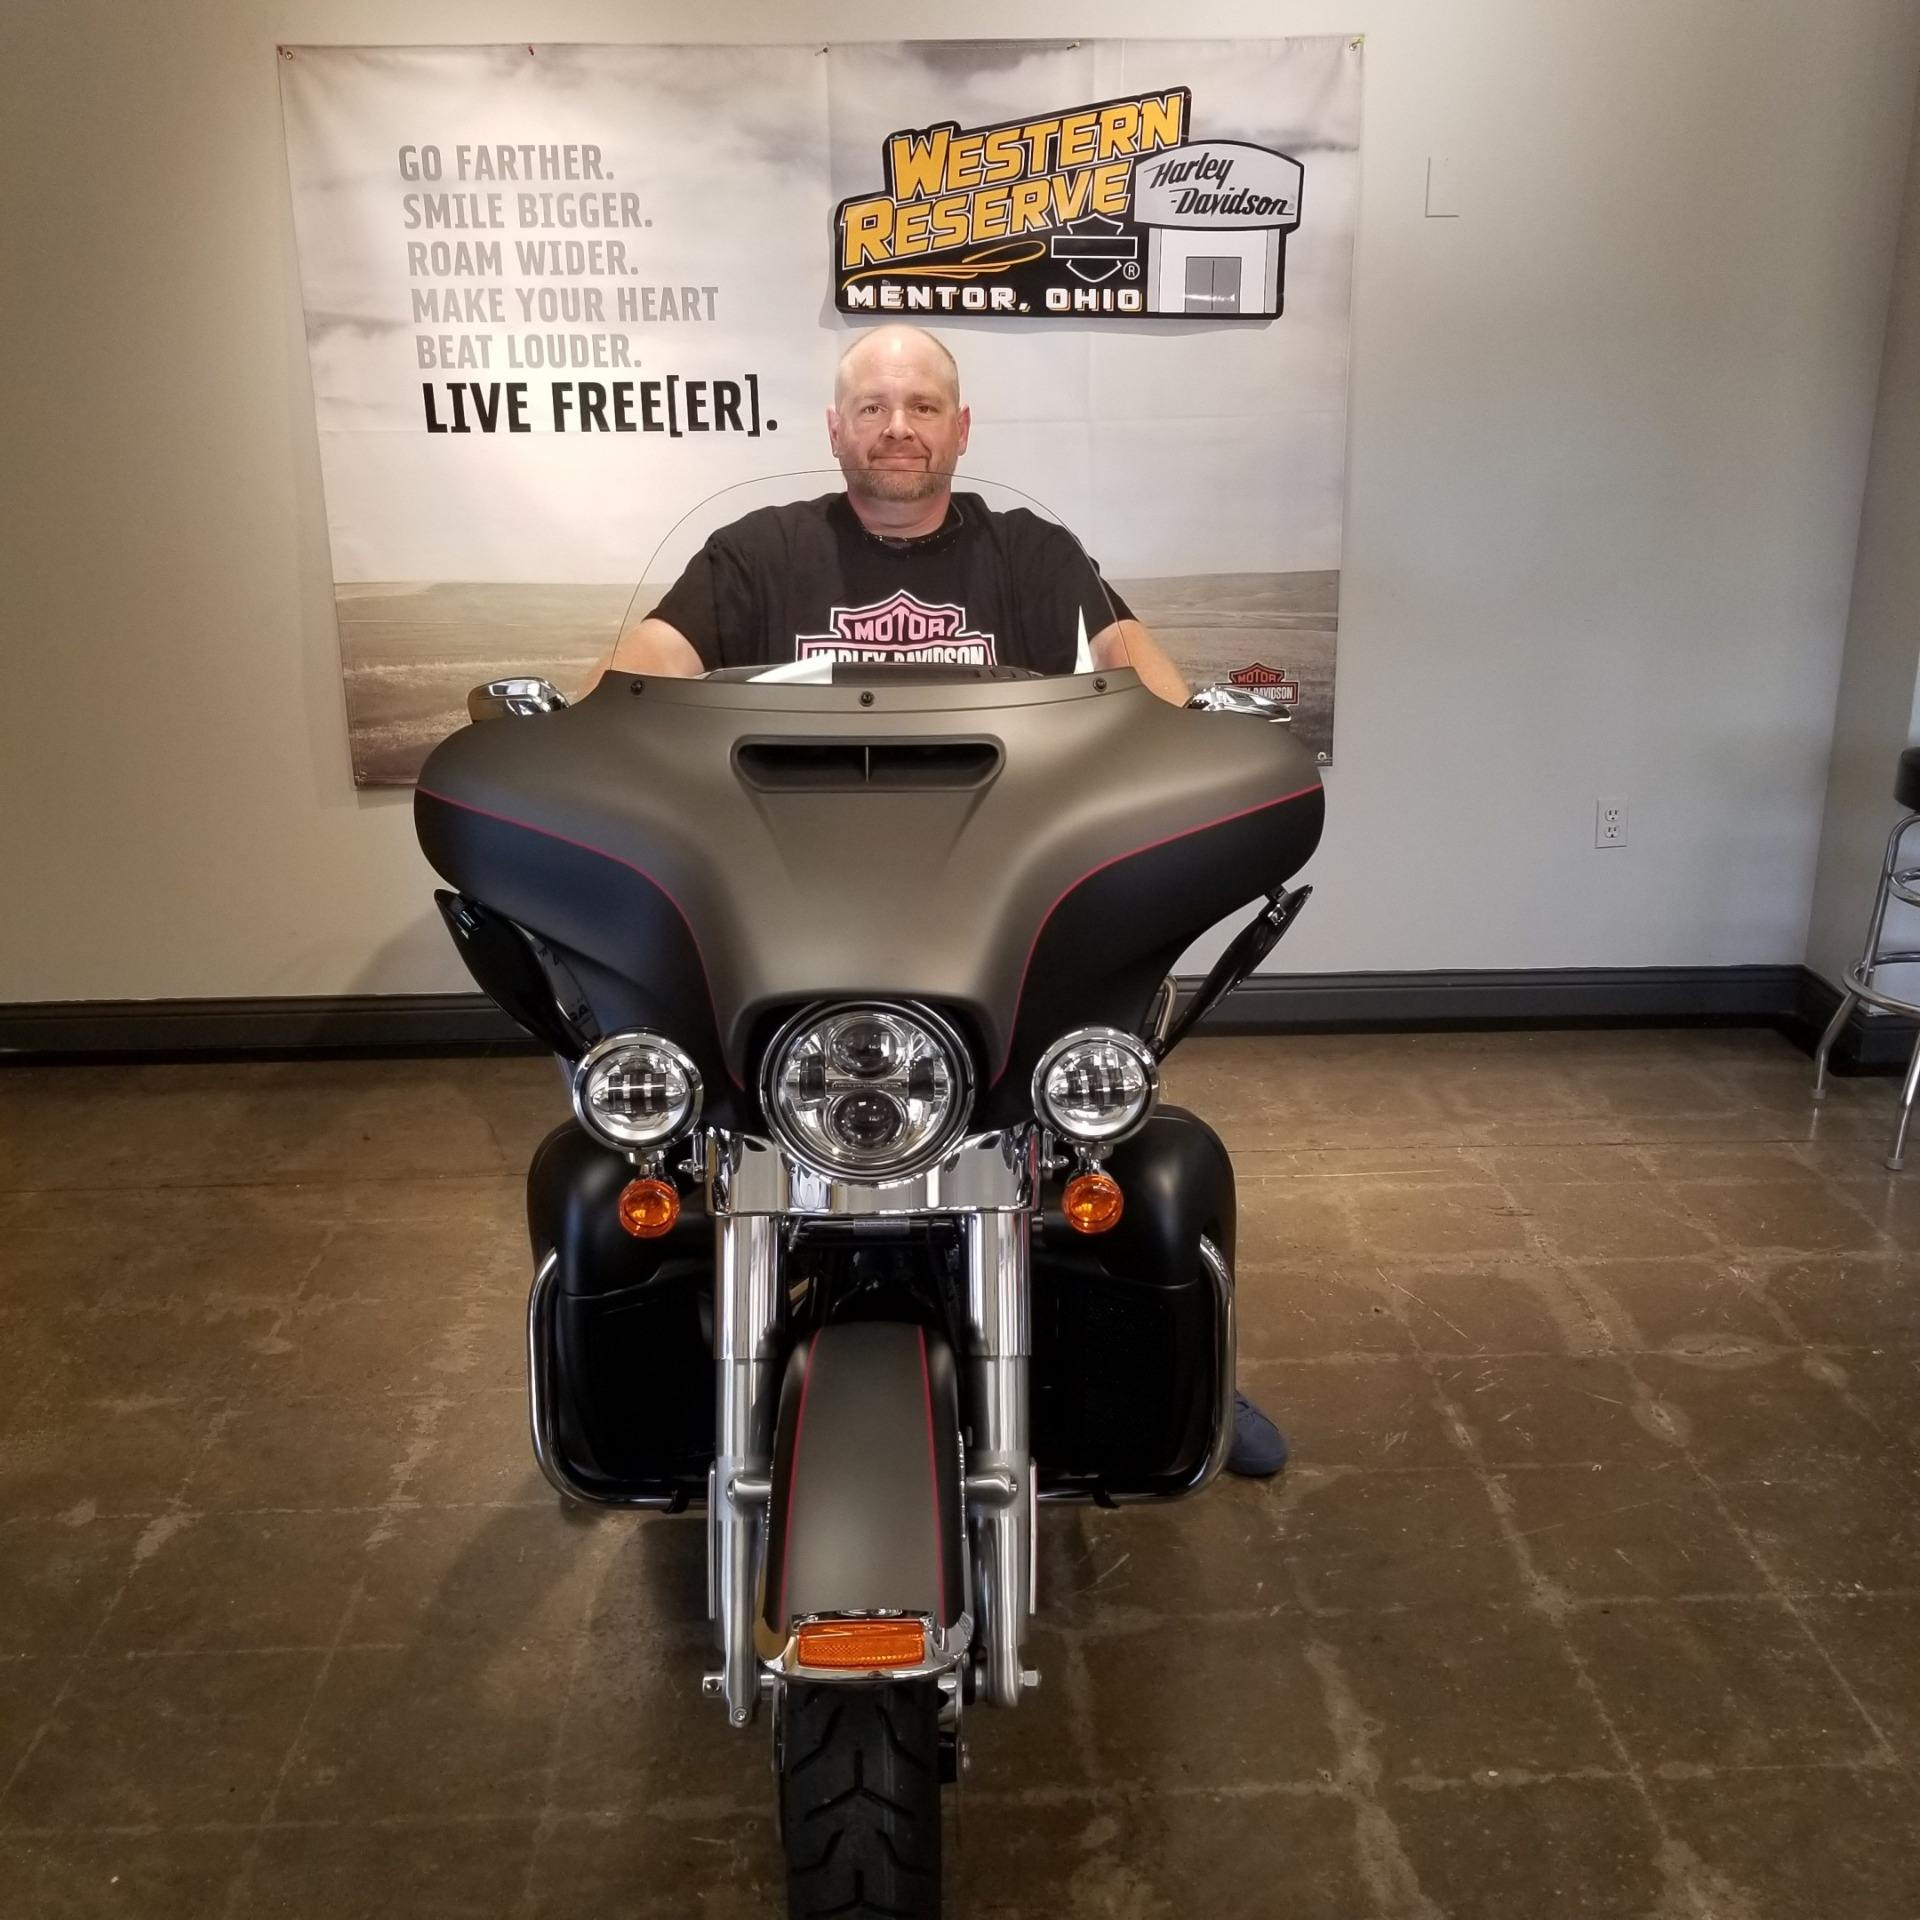 2019 Harley-Davidson Ultra Limited in Mentor, Ohio - Photo 10